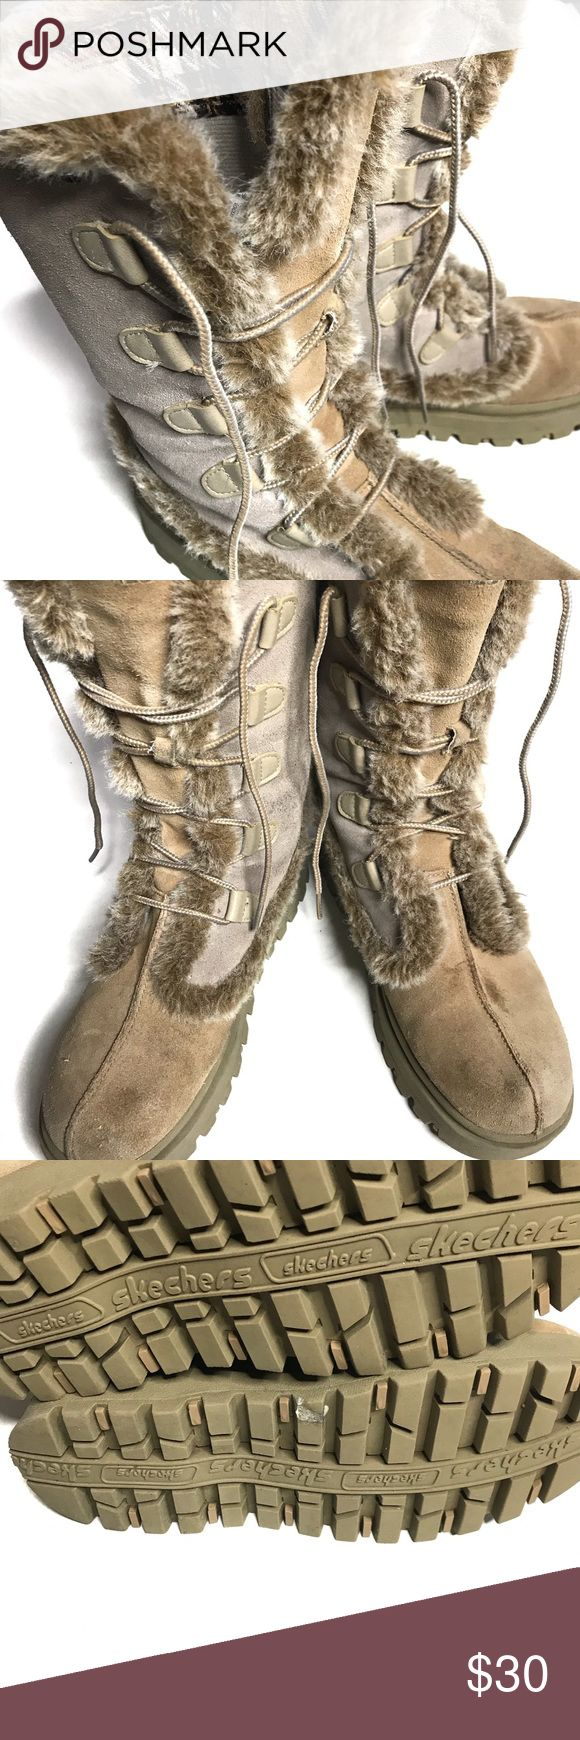 Women's Skechers Winter Boots Leather and fur women's Skechers winter boots. Barely worn. I ship fast! Skechers Shoes Winter & Rain Boots